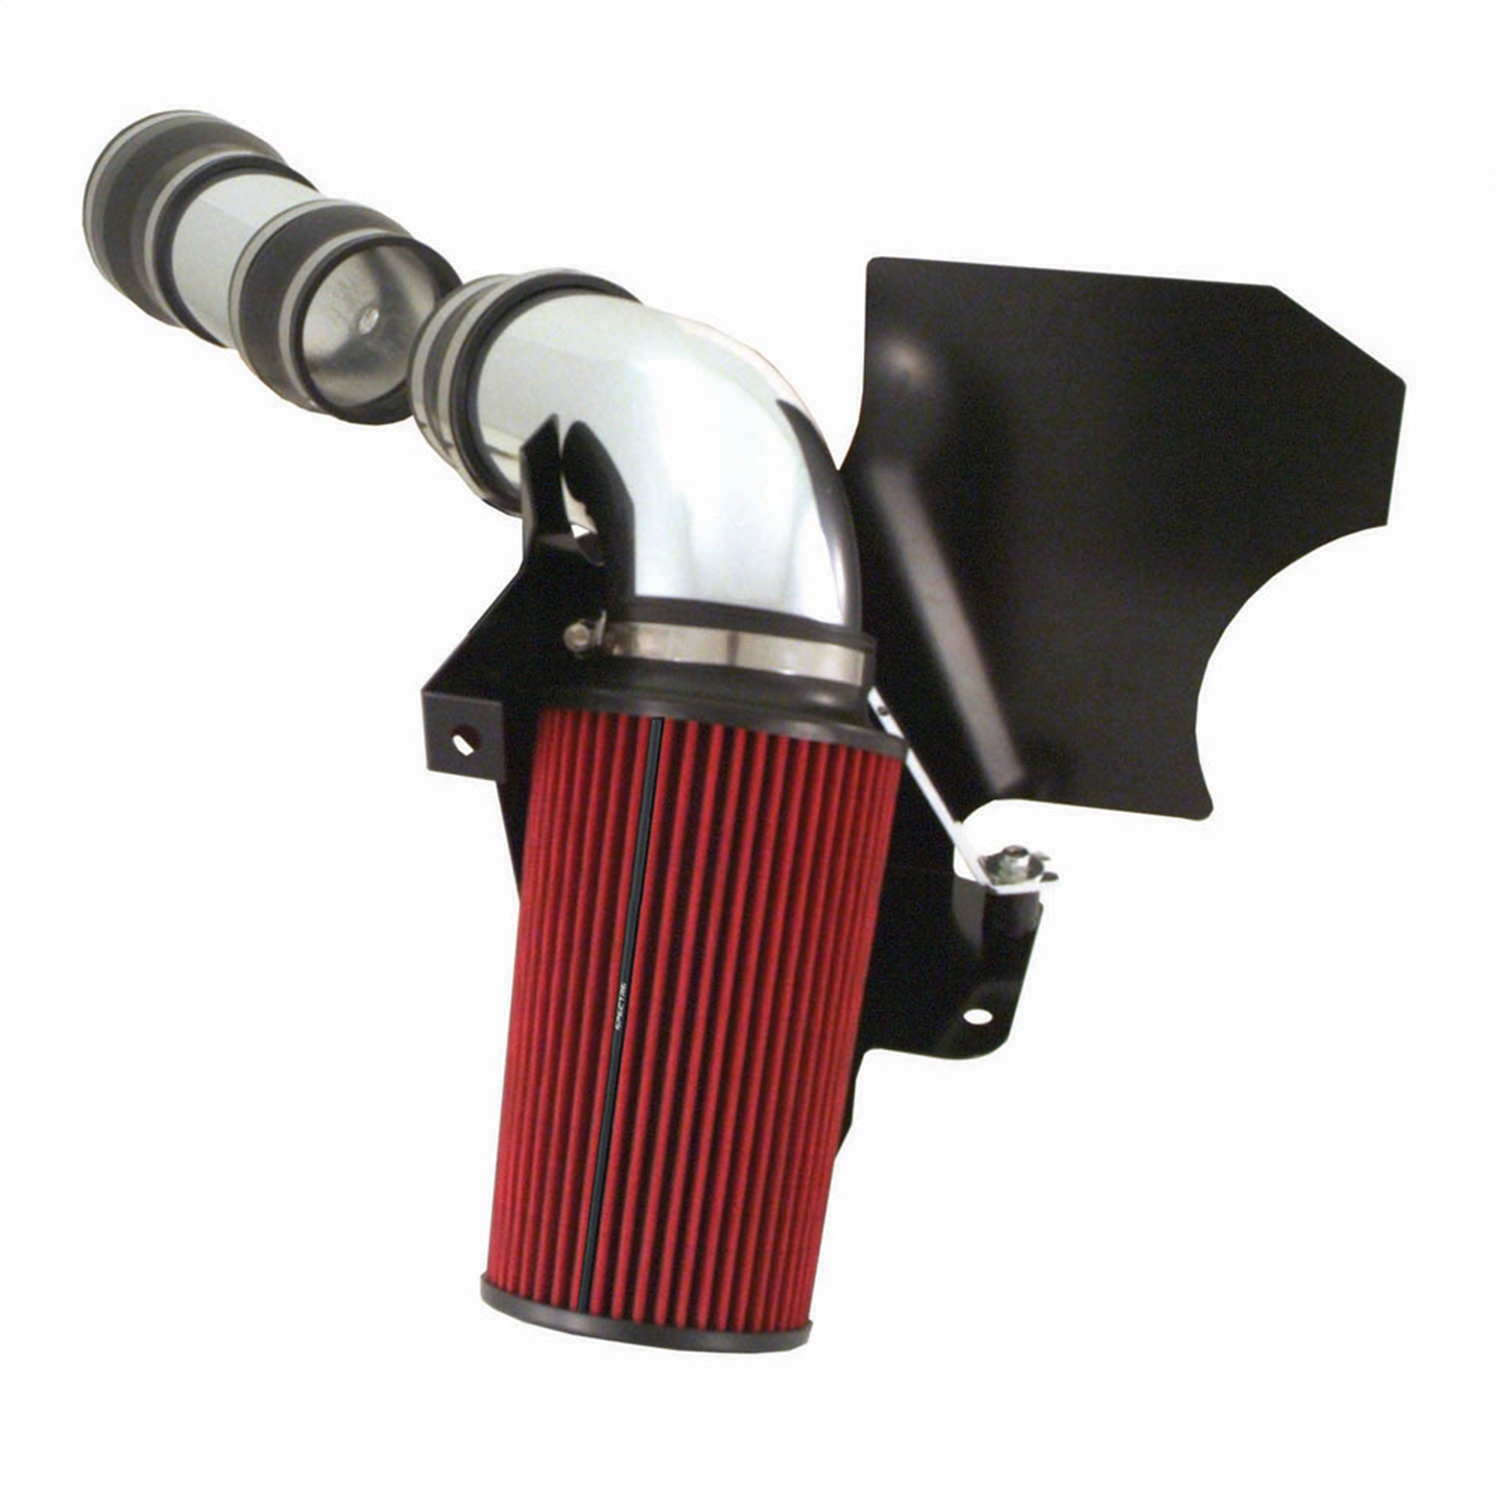 Spectre Performance 9921 Air Intake Kit 9921